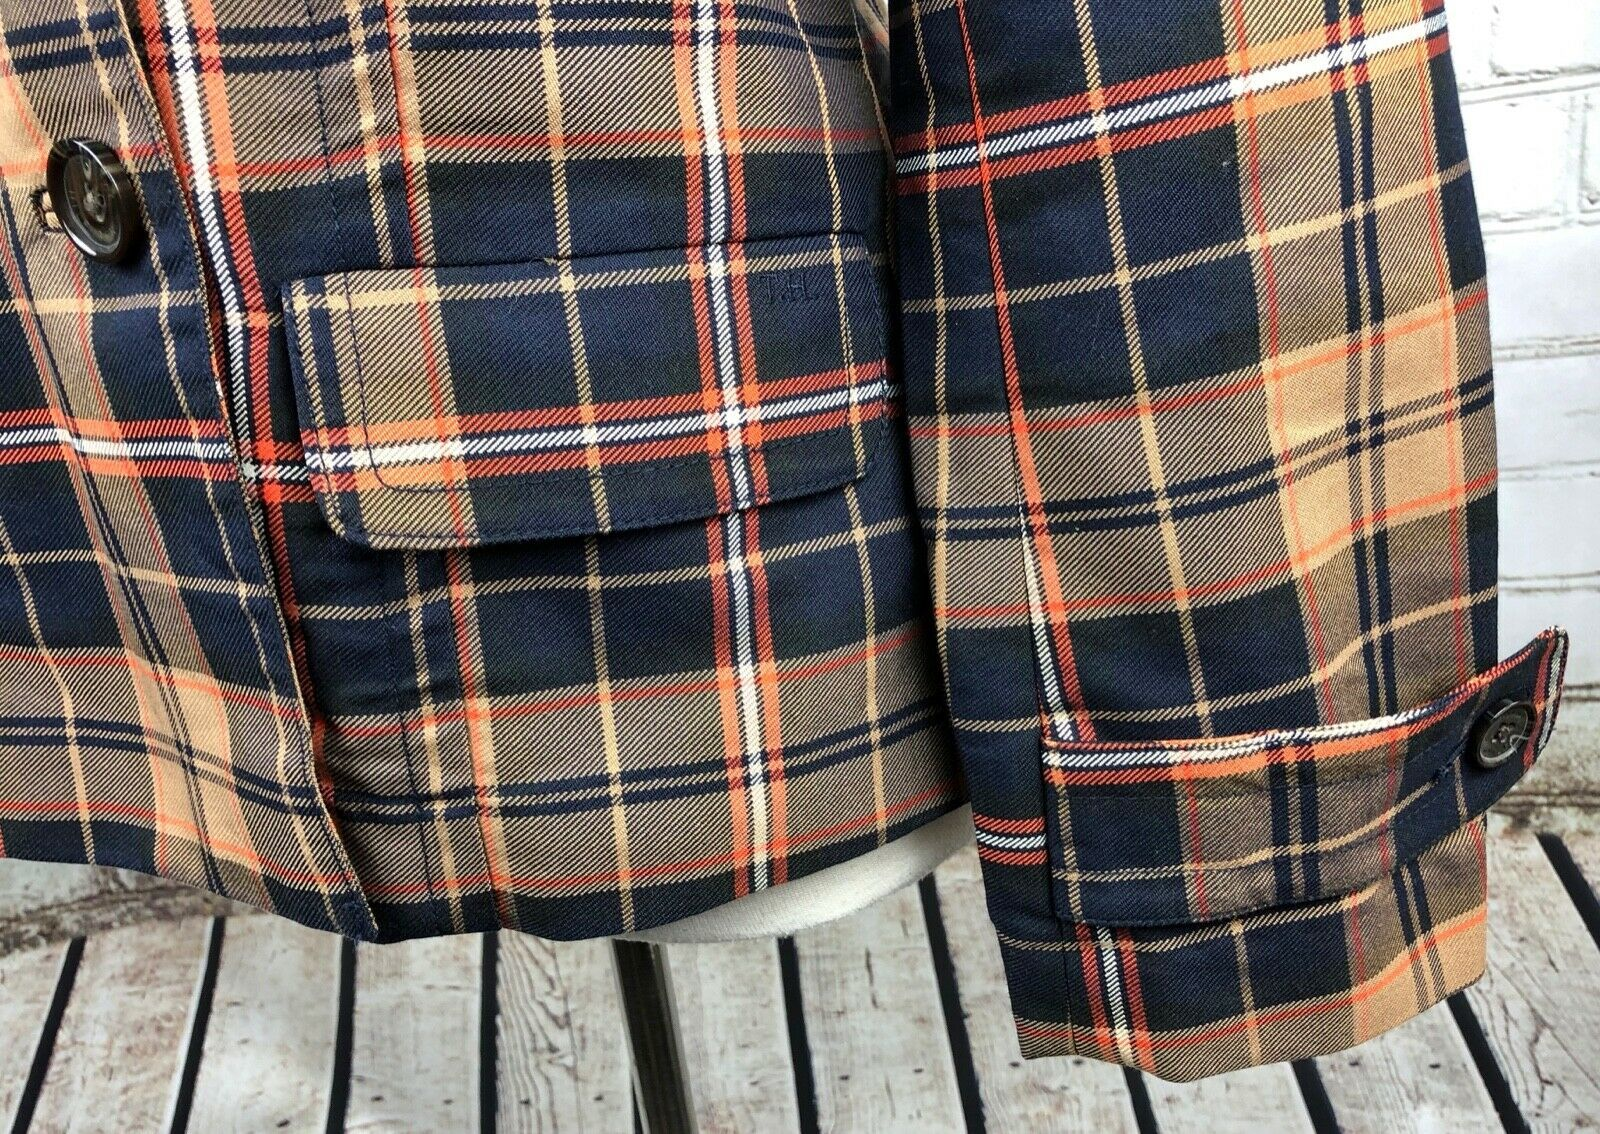 Tommy Hilfiger Jacket Plaid Lightweight Pea Coat Trench Fall Plaid Cotton Size M image 3